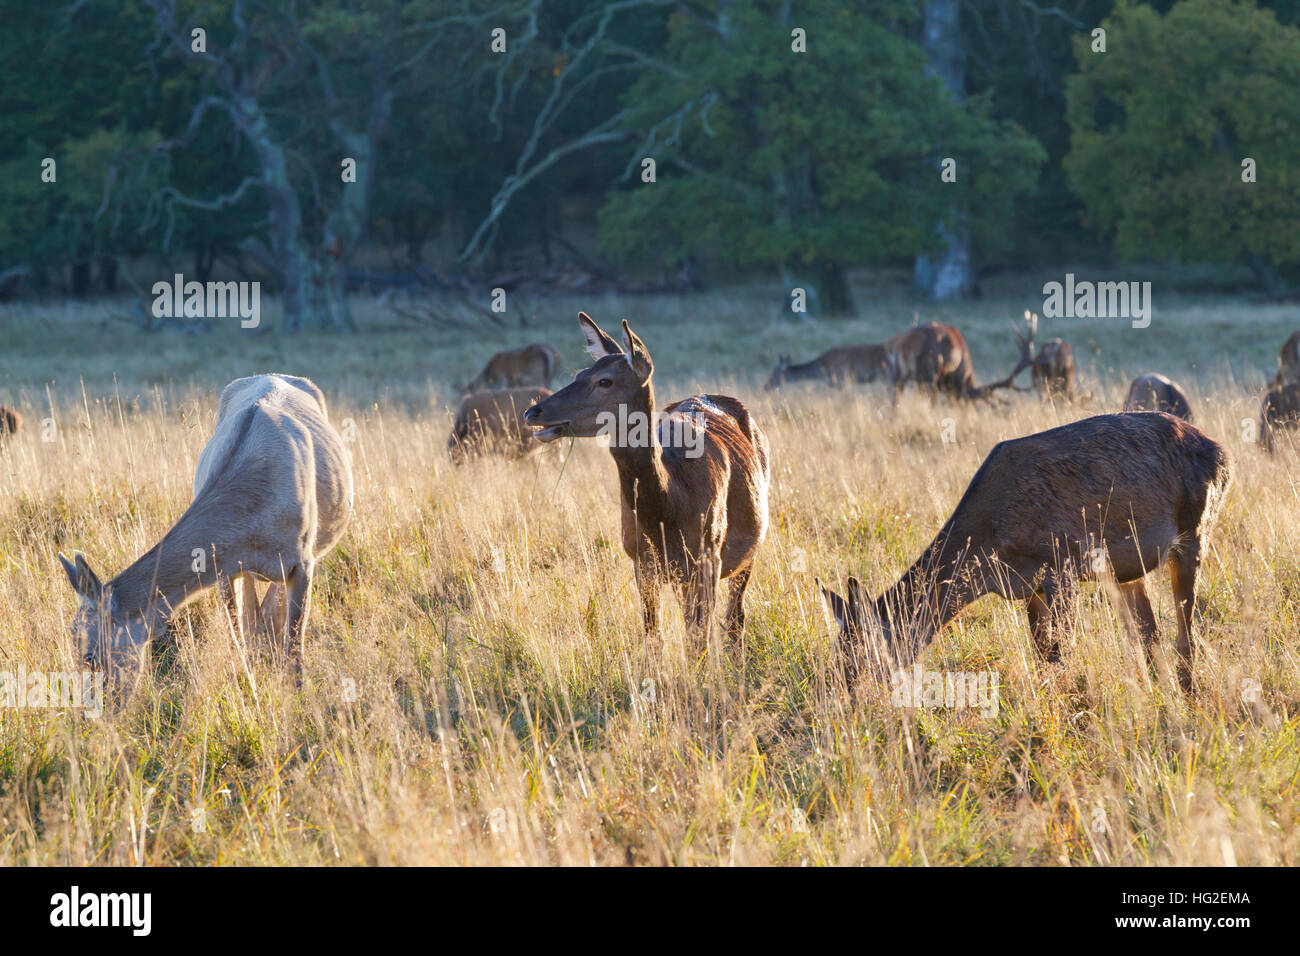 Hinds and stags of red deer grazing in Dyrehaven, The Deer Park, just north of Copenhagen, Denmark, Old oak trees Stock Photo